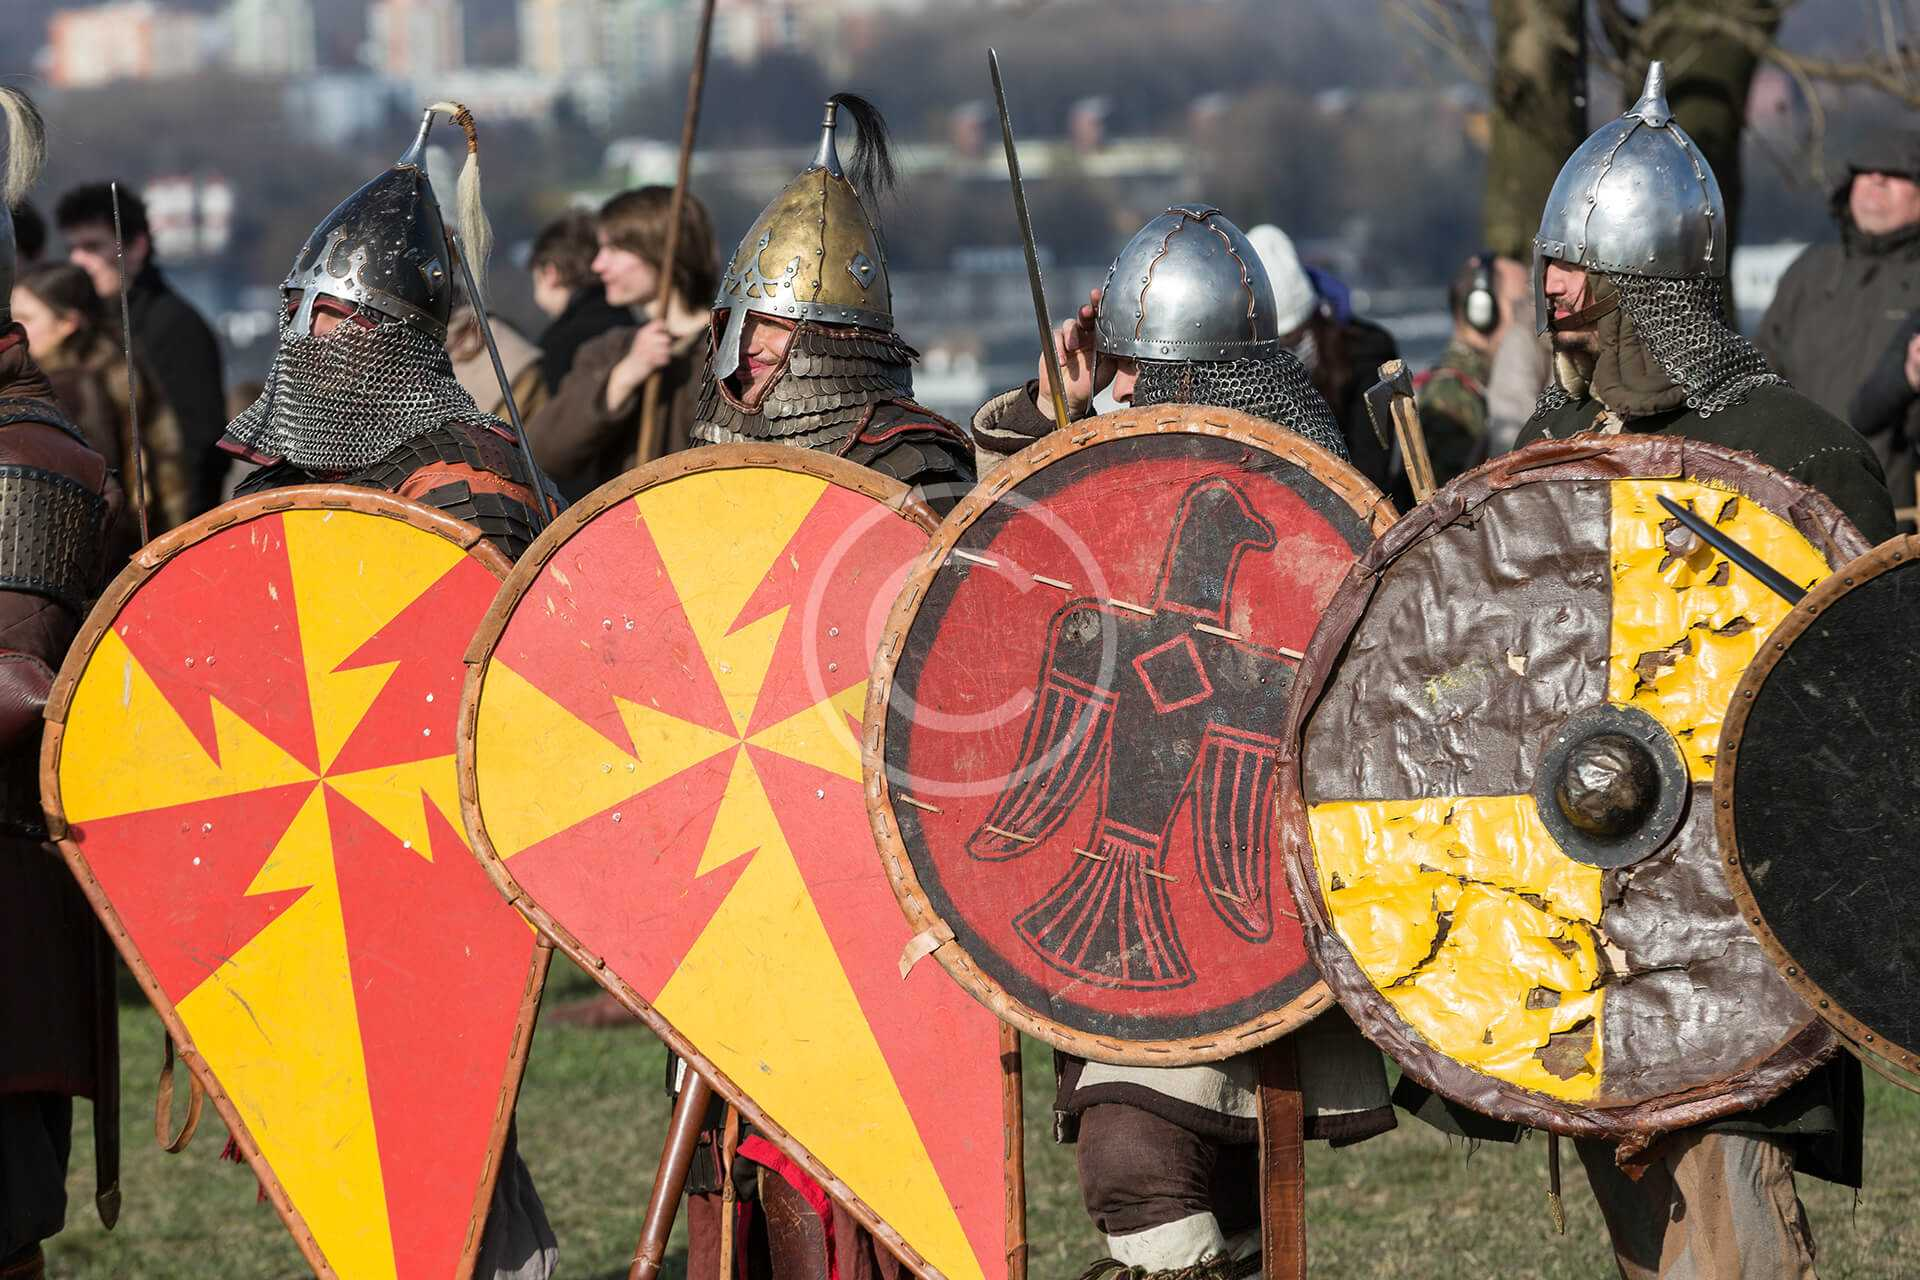 Medieval Culture Festival Highlights